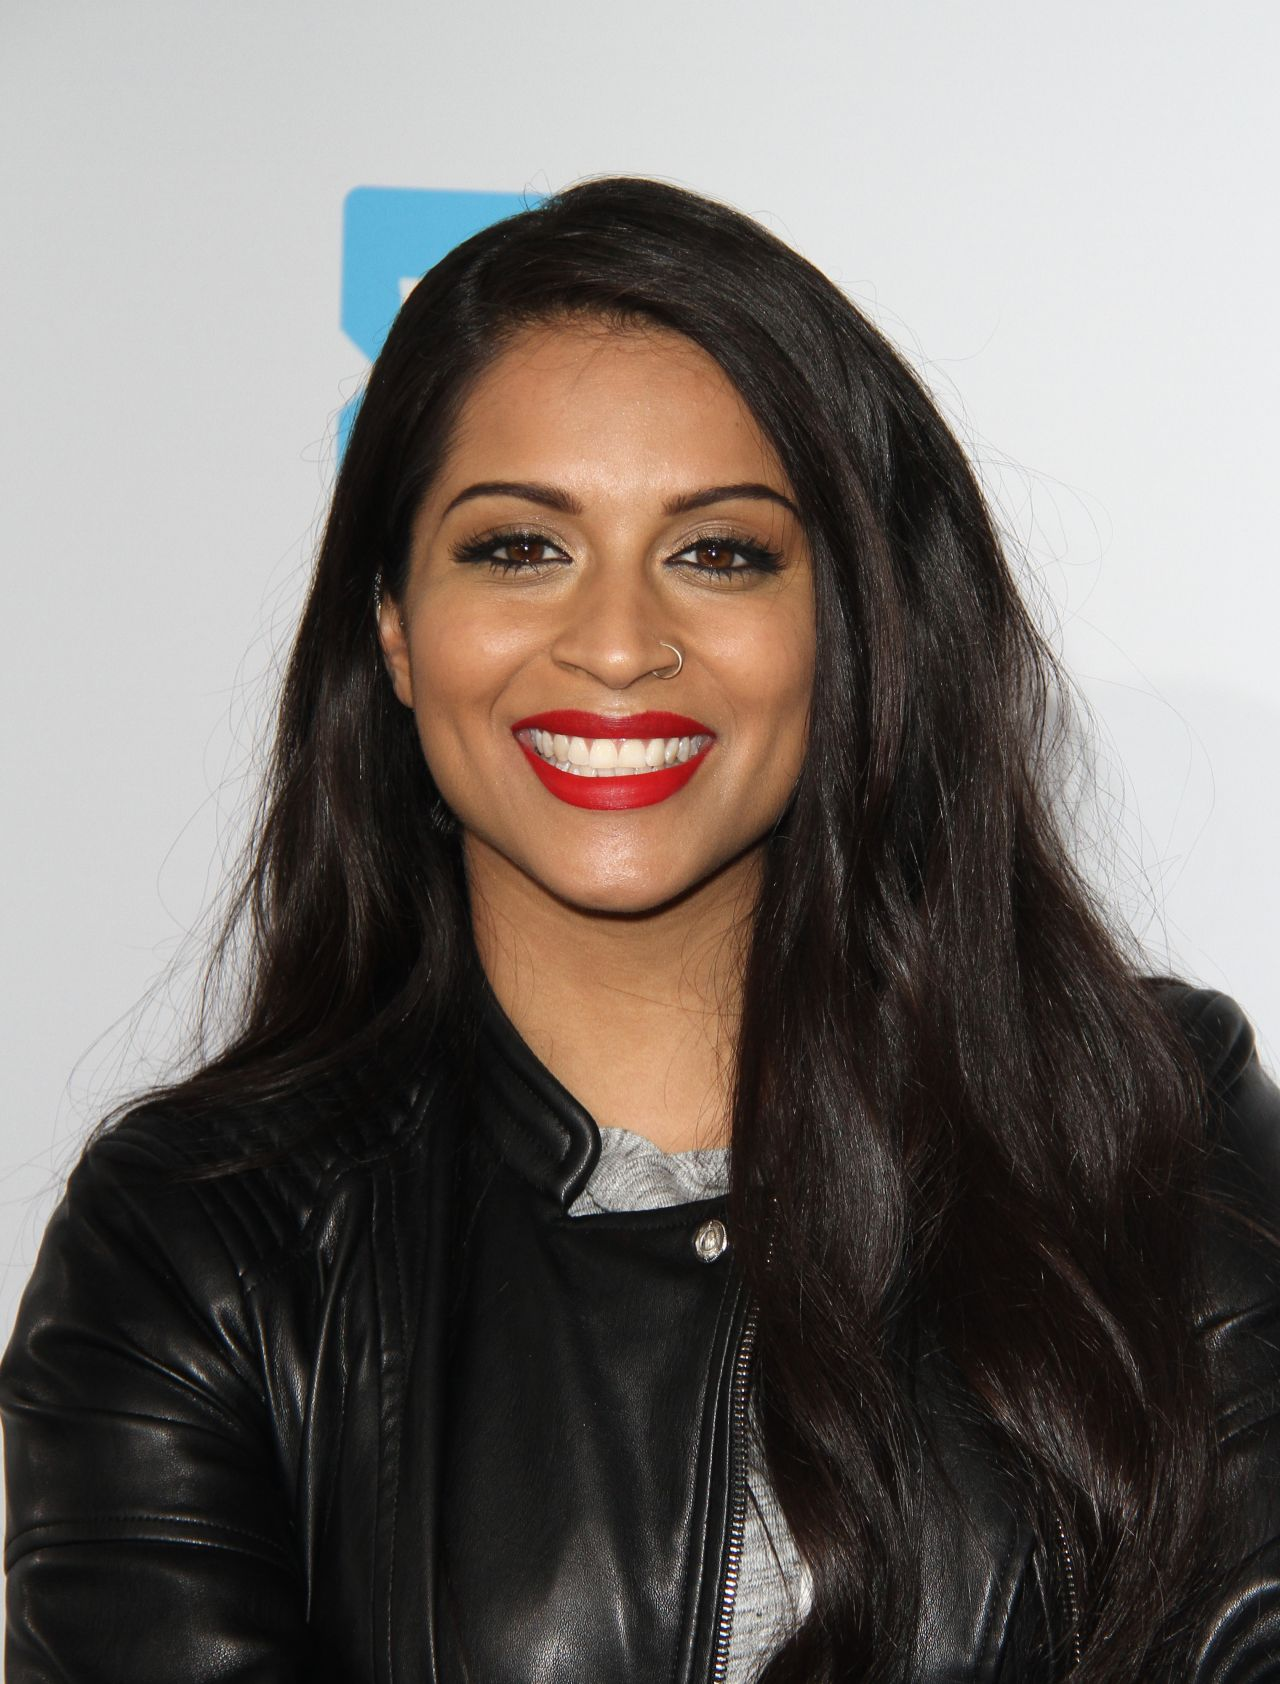 IISuperwomanII Net Worth